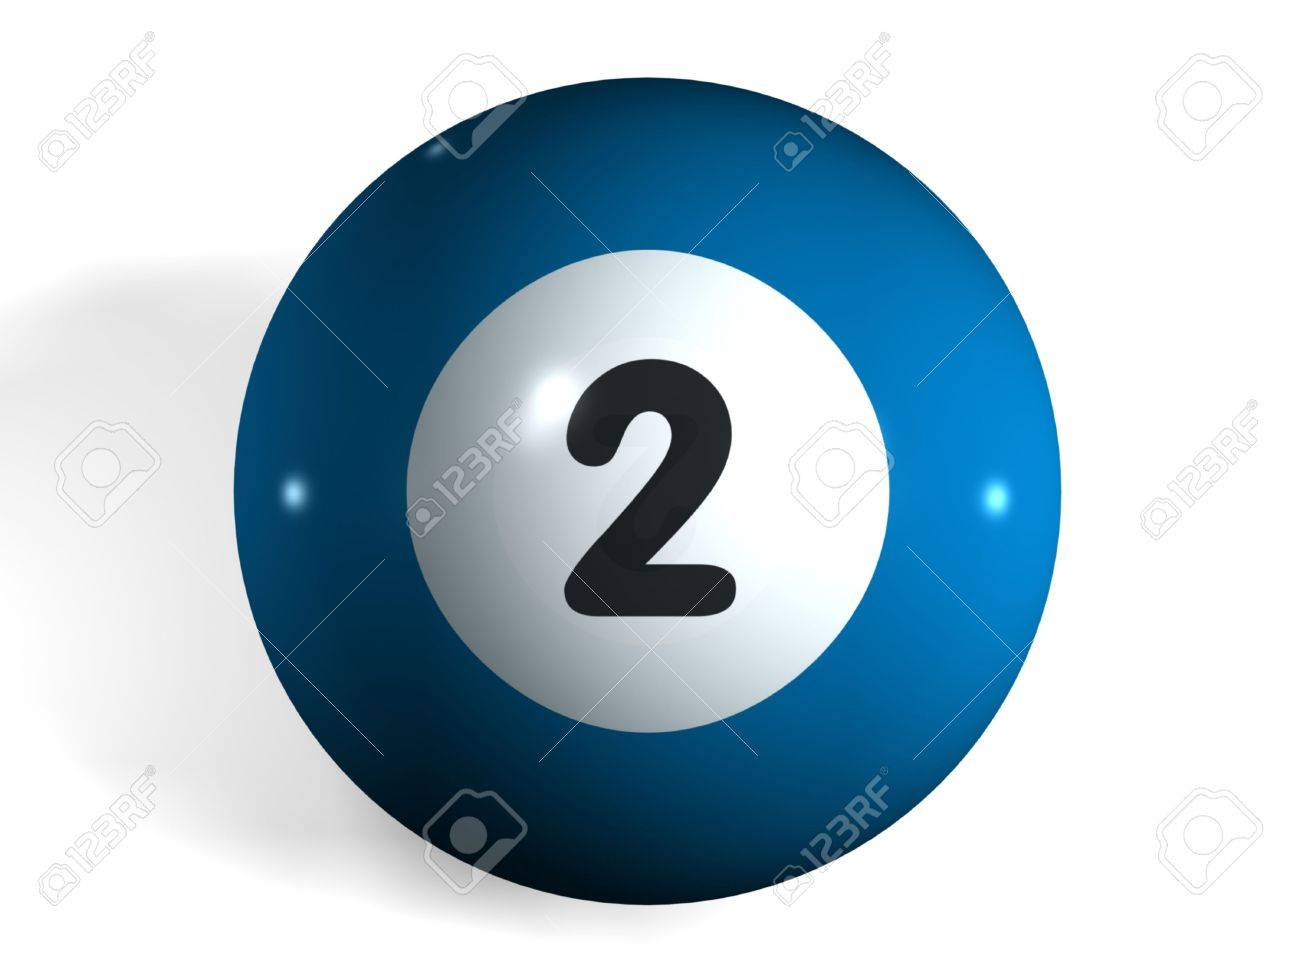 isolated 3d pool ball number 2 stock photo, picture and royalty